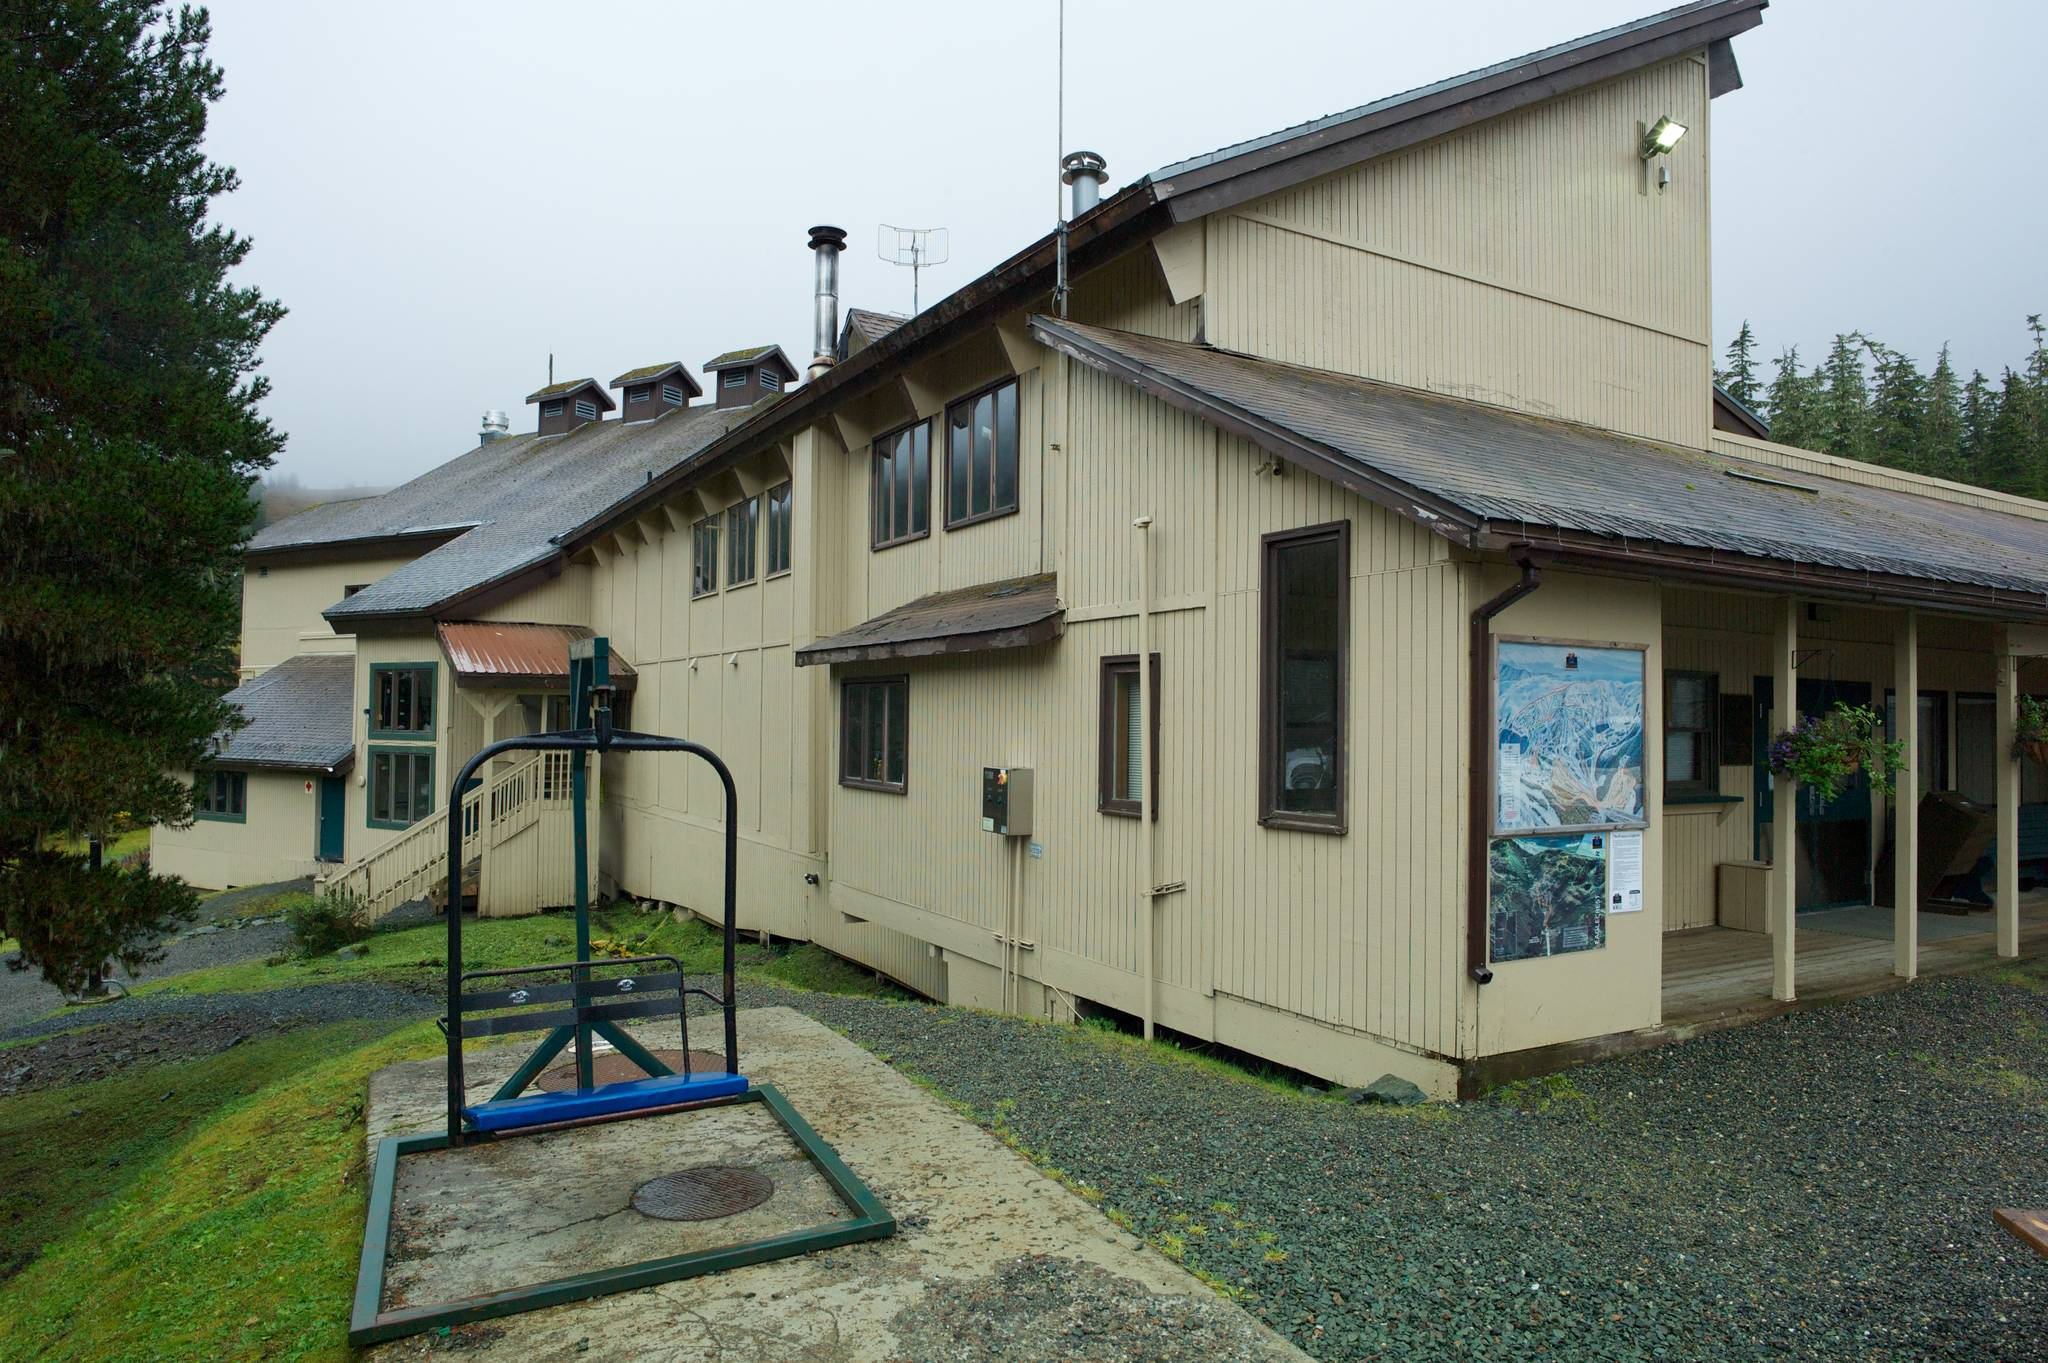 The Eaglecrest Ski Area lodge, seen here in 2015, is the planned site of the Old Tower Bar, which would serve beer and wine during ski season. In a unanimous vote Monday, Oct. 15, 2018, the Alcohol Control Board rejected an alcohol license for the business. (Michael Penn | Juneau Empire file)